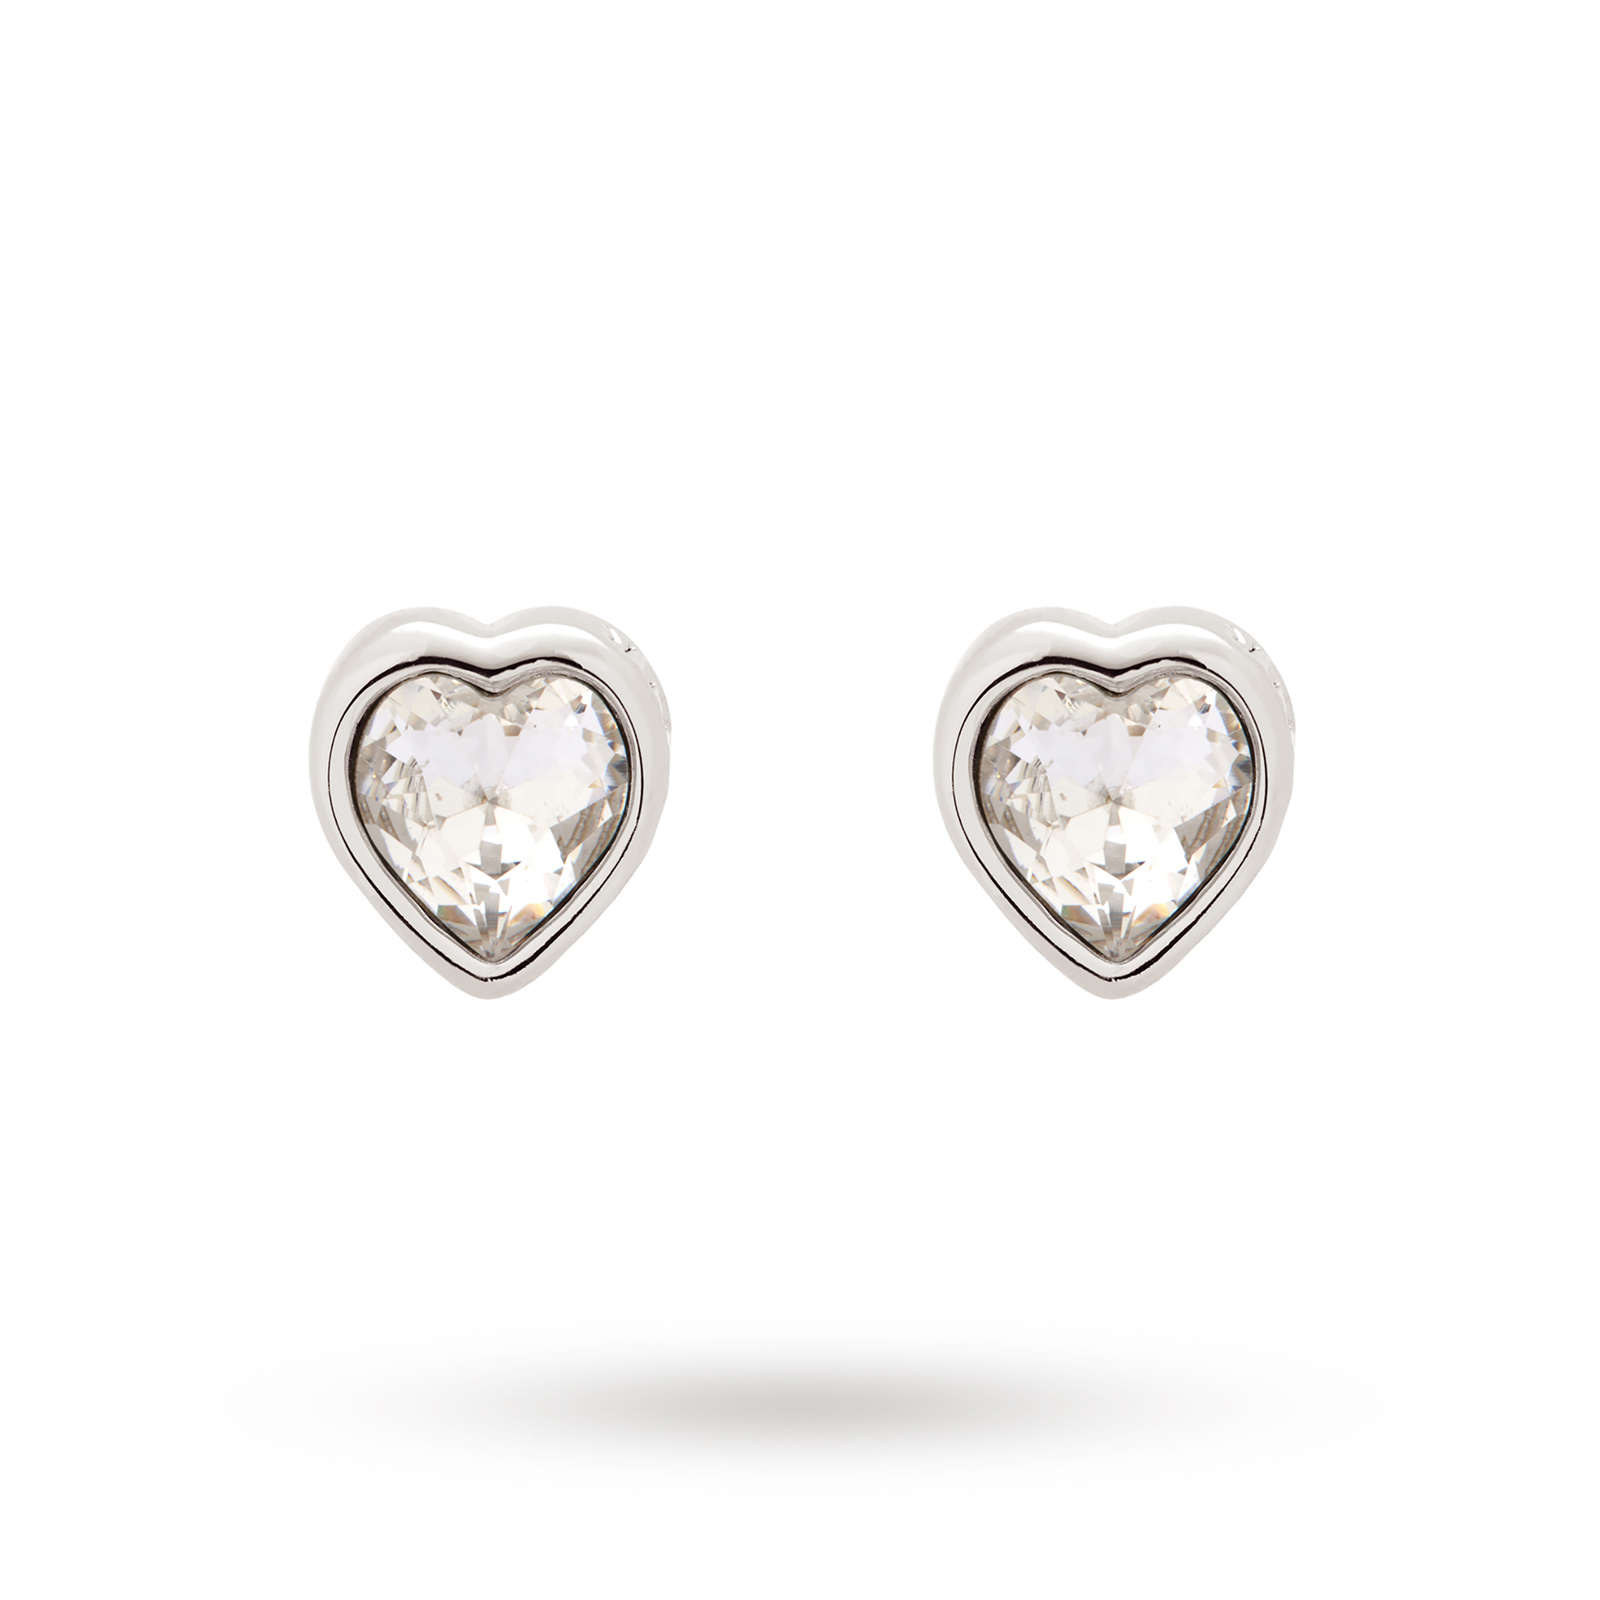 Crystal Heart Earrings Macy S Children 14k Gold Earrings